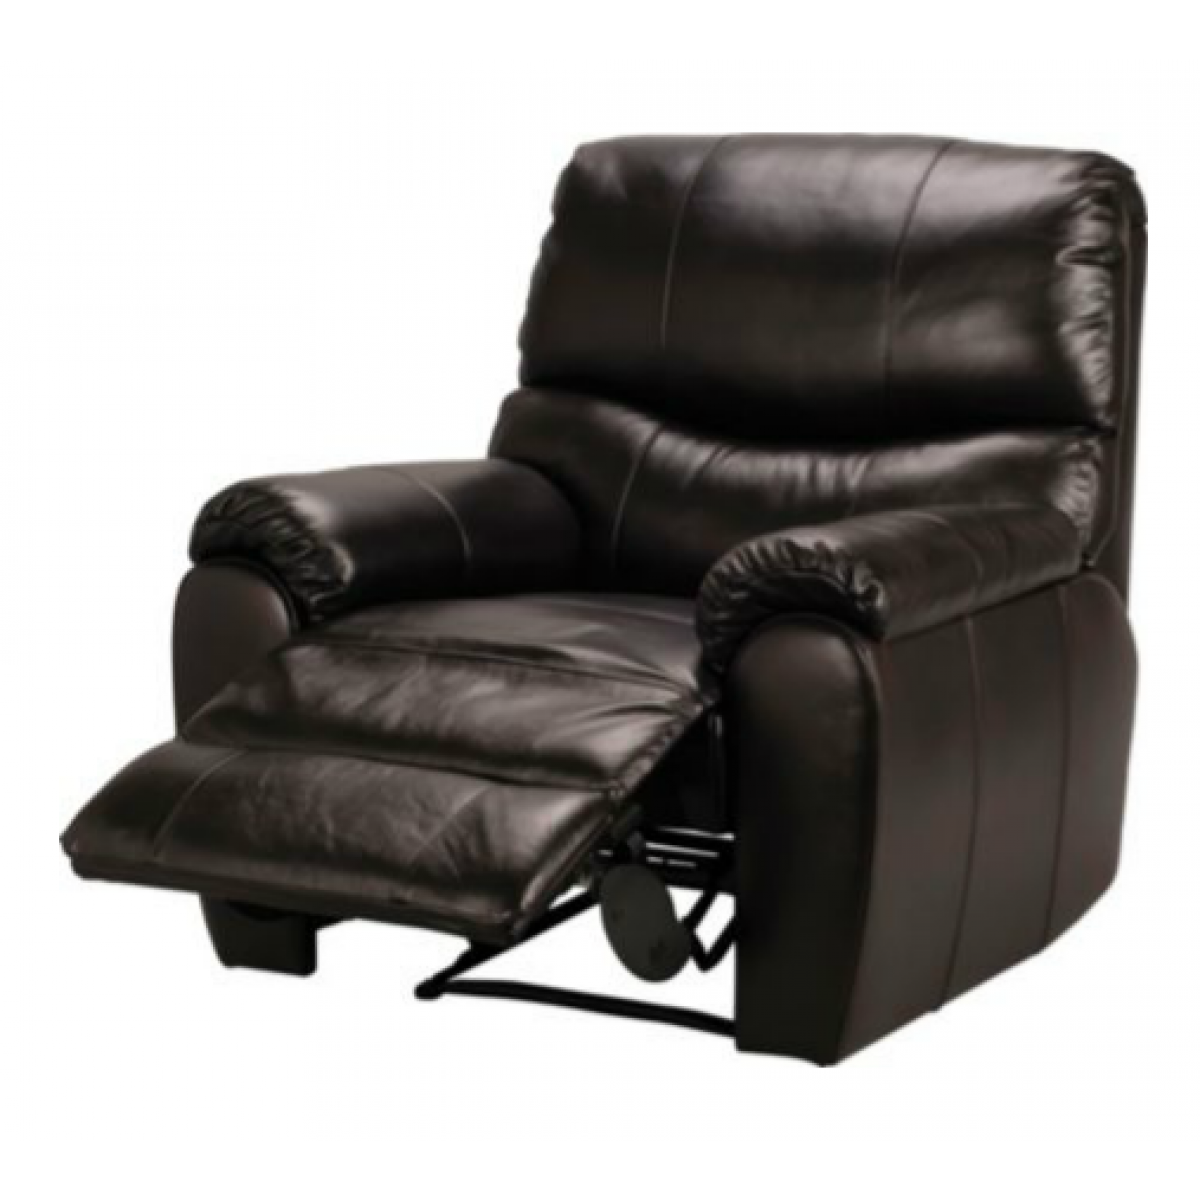 Leather Reclining Chair Black Leather Recliner Chair Table And Chairs Leather